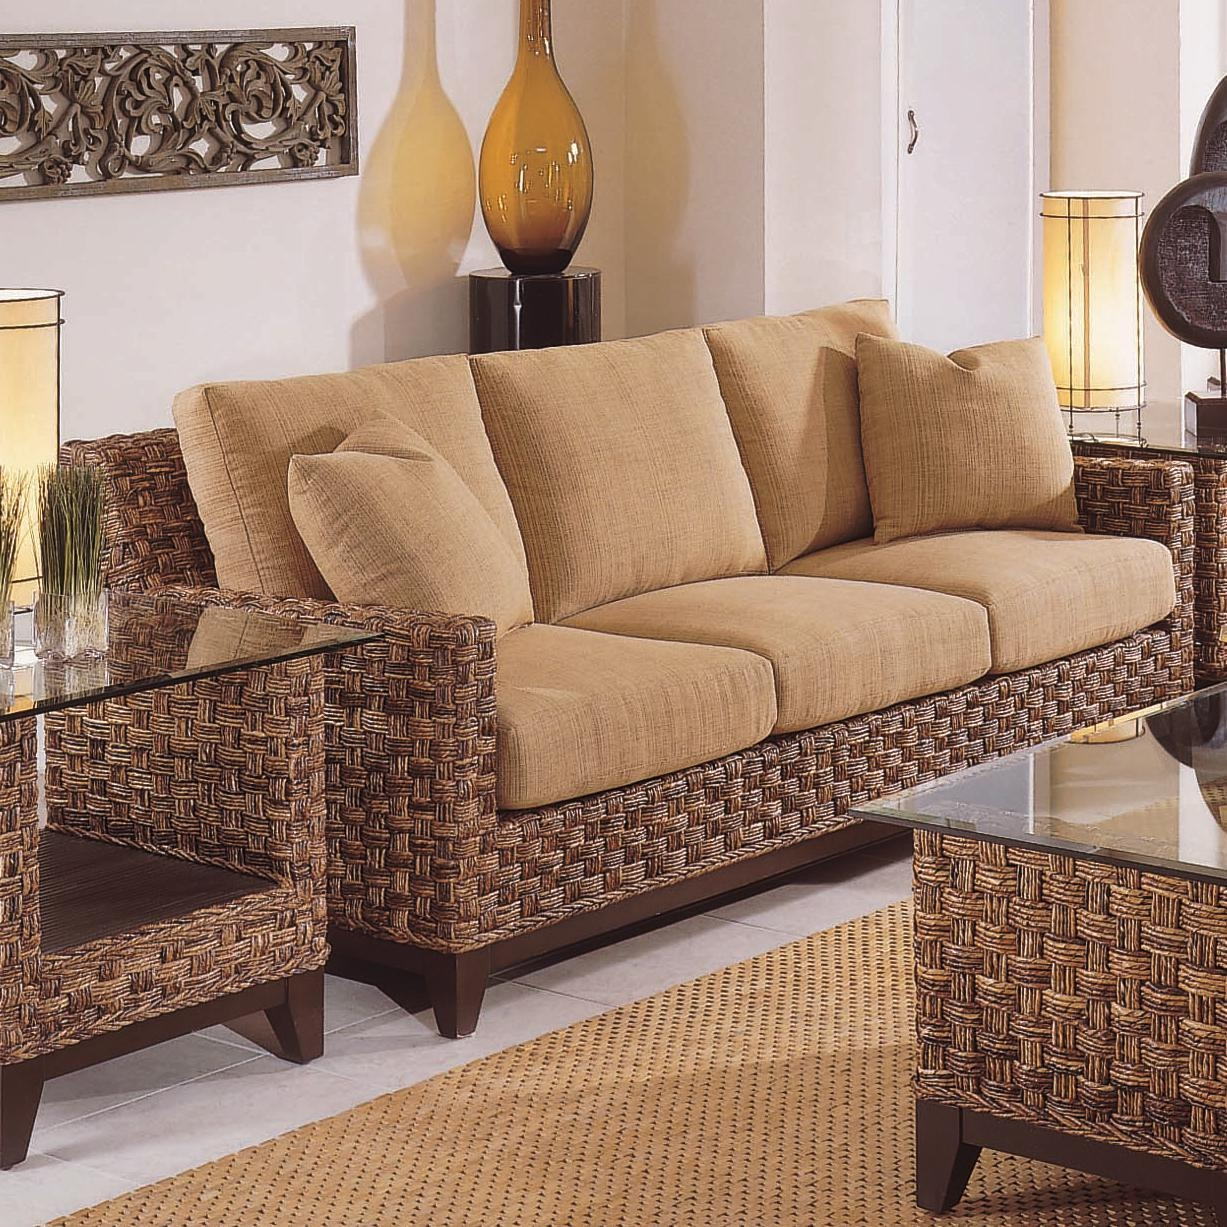 Braxton Culler Tribeca 2960 Modern Wicker Three Seat Queen Sleeper Pertaining To Braxton Culler Sofas (View 6 of 20)